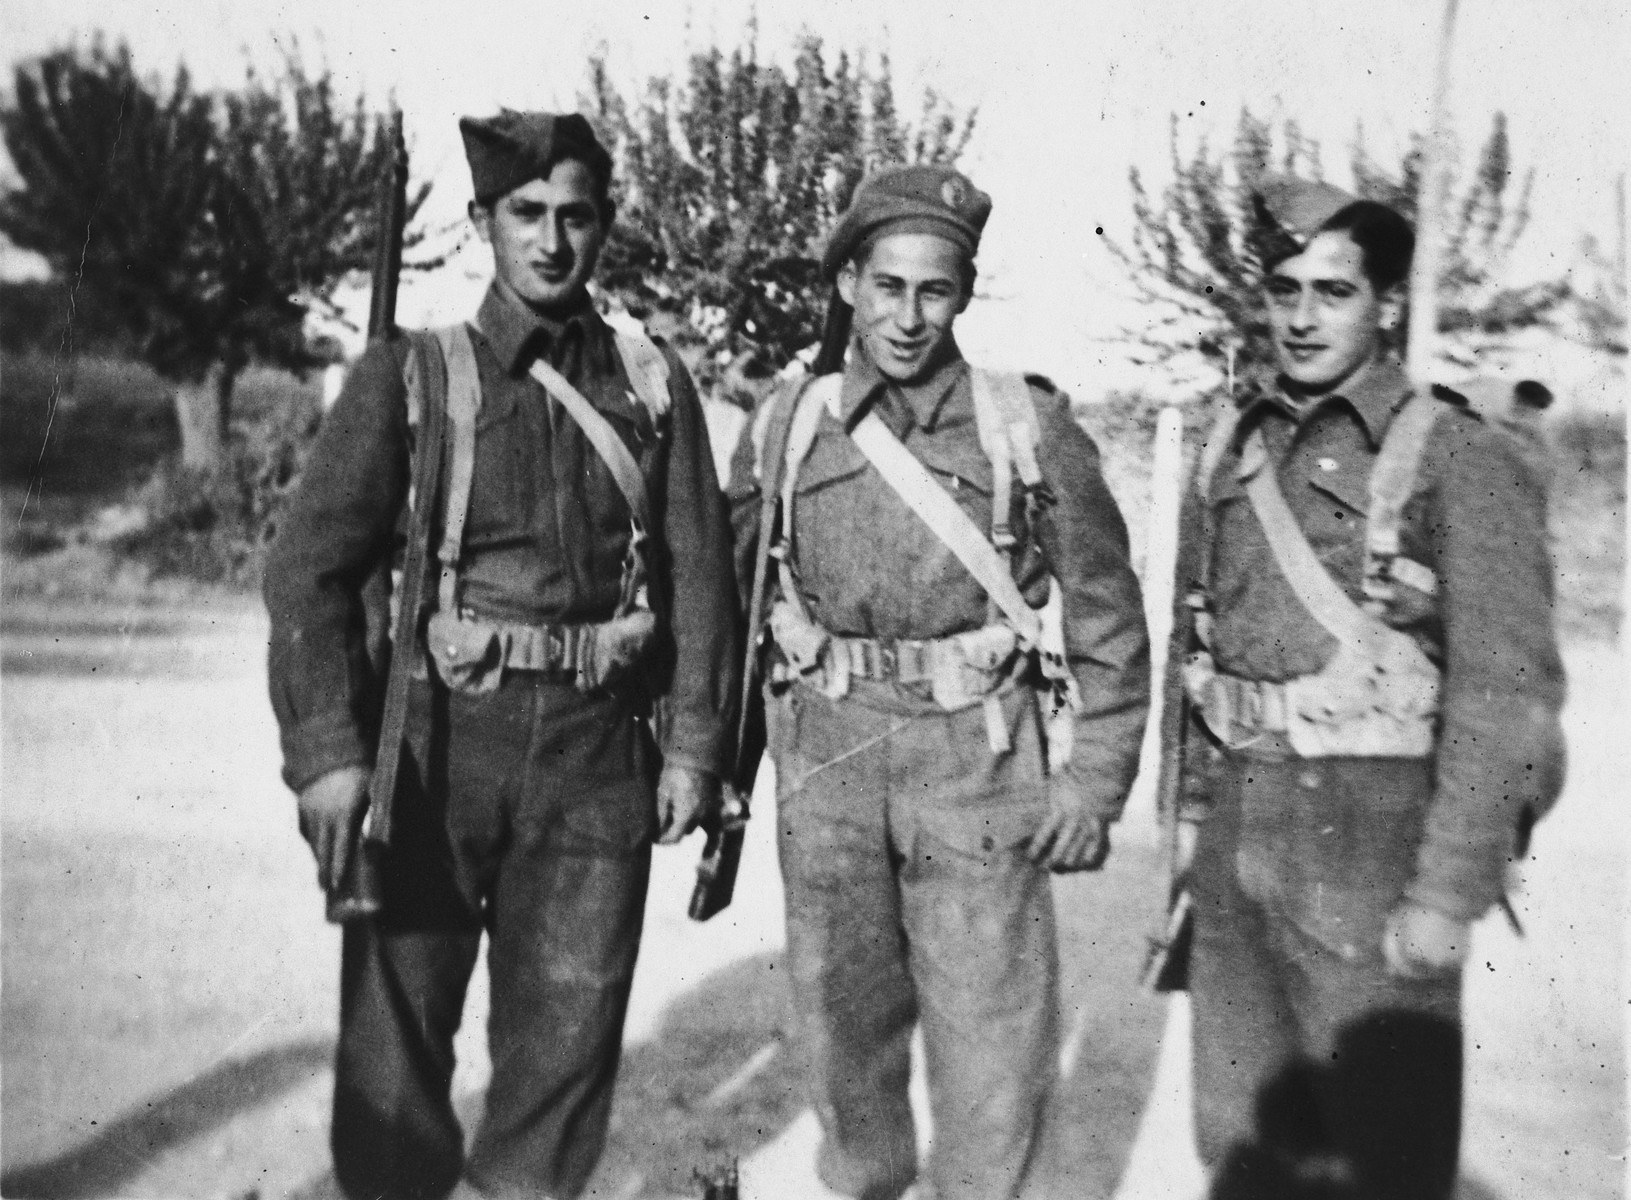 Three members of the Jewish Brigade and members of the British 8th Army pose on a street in Italy.  Samuel Zajac is on the far left.  His brother Felix is on the right.